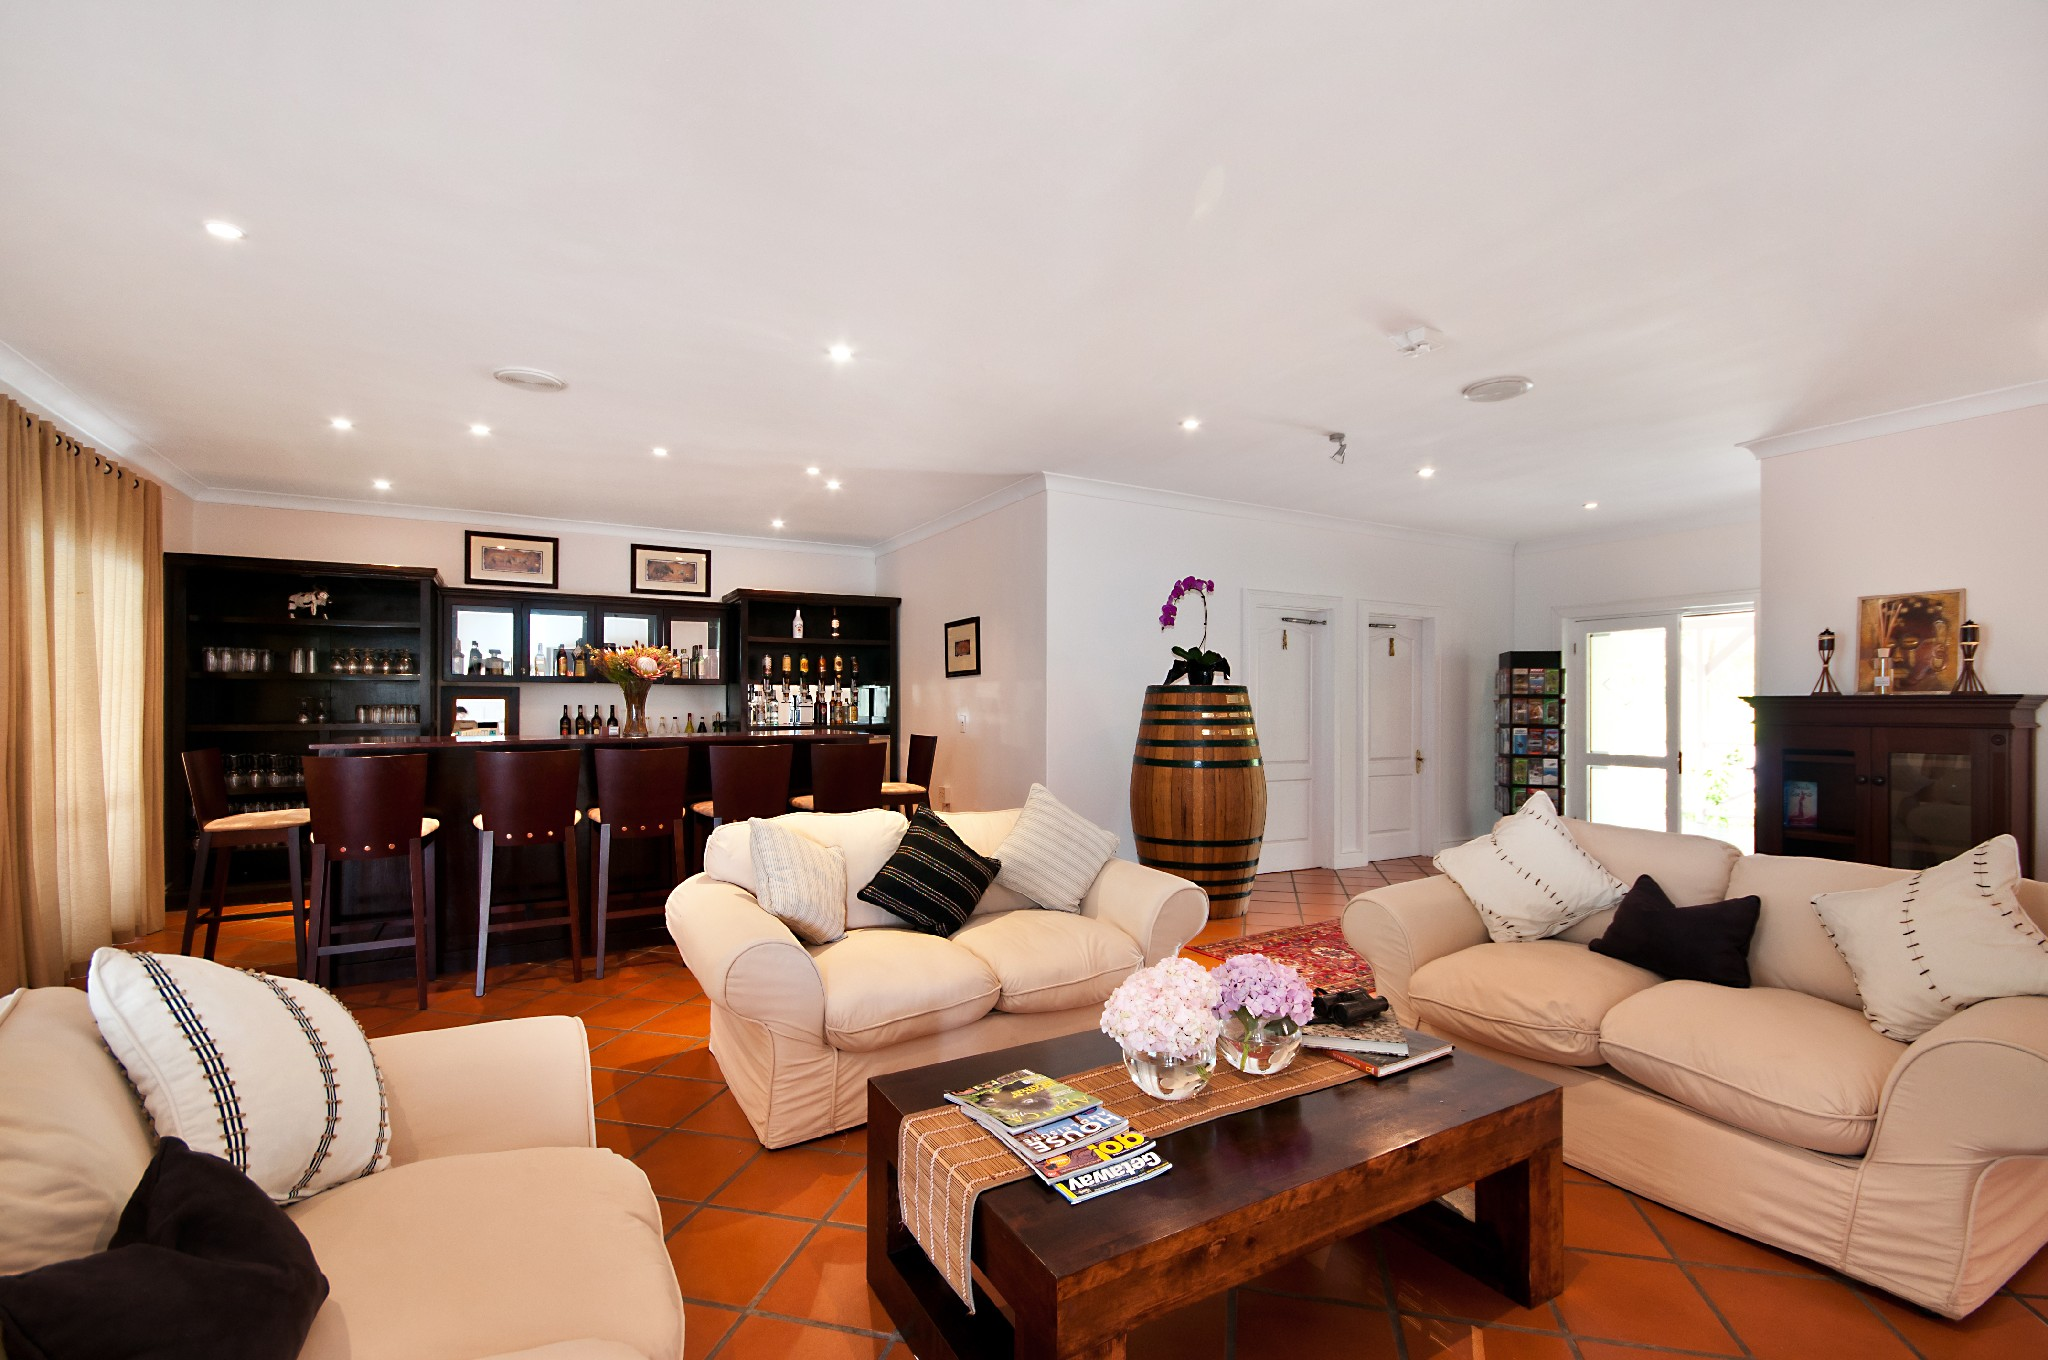 Plettenberg Bay Accommodation Luxury 4 Star Affordable Lounge And Television.